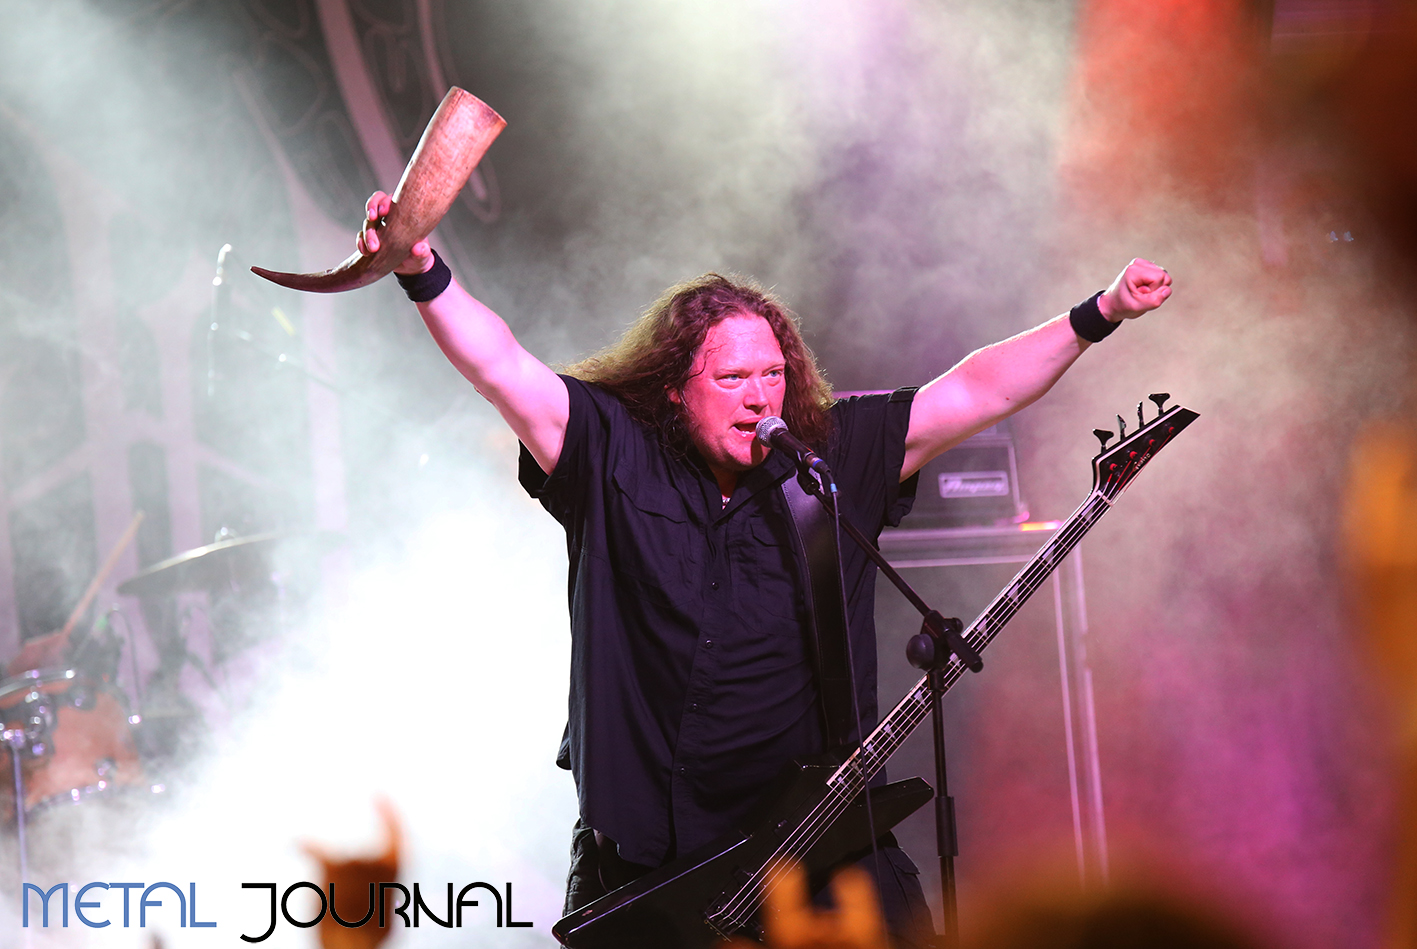 unleashed - leyendas del rock 2019 metal journal pic 1